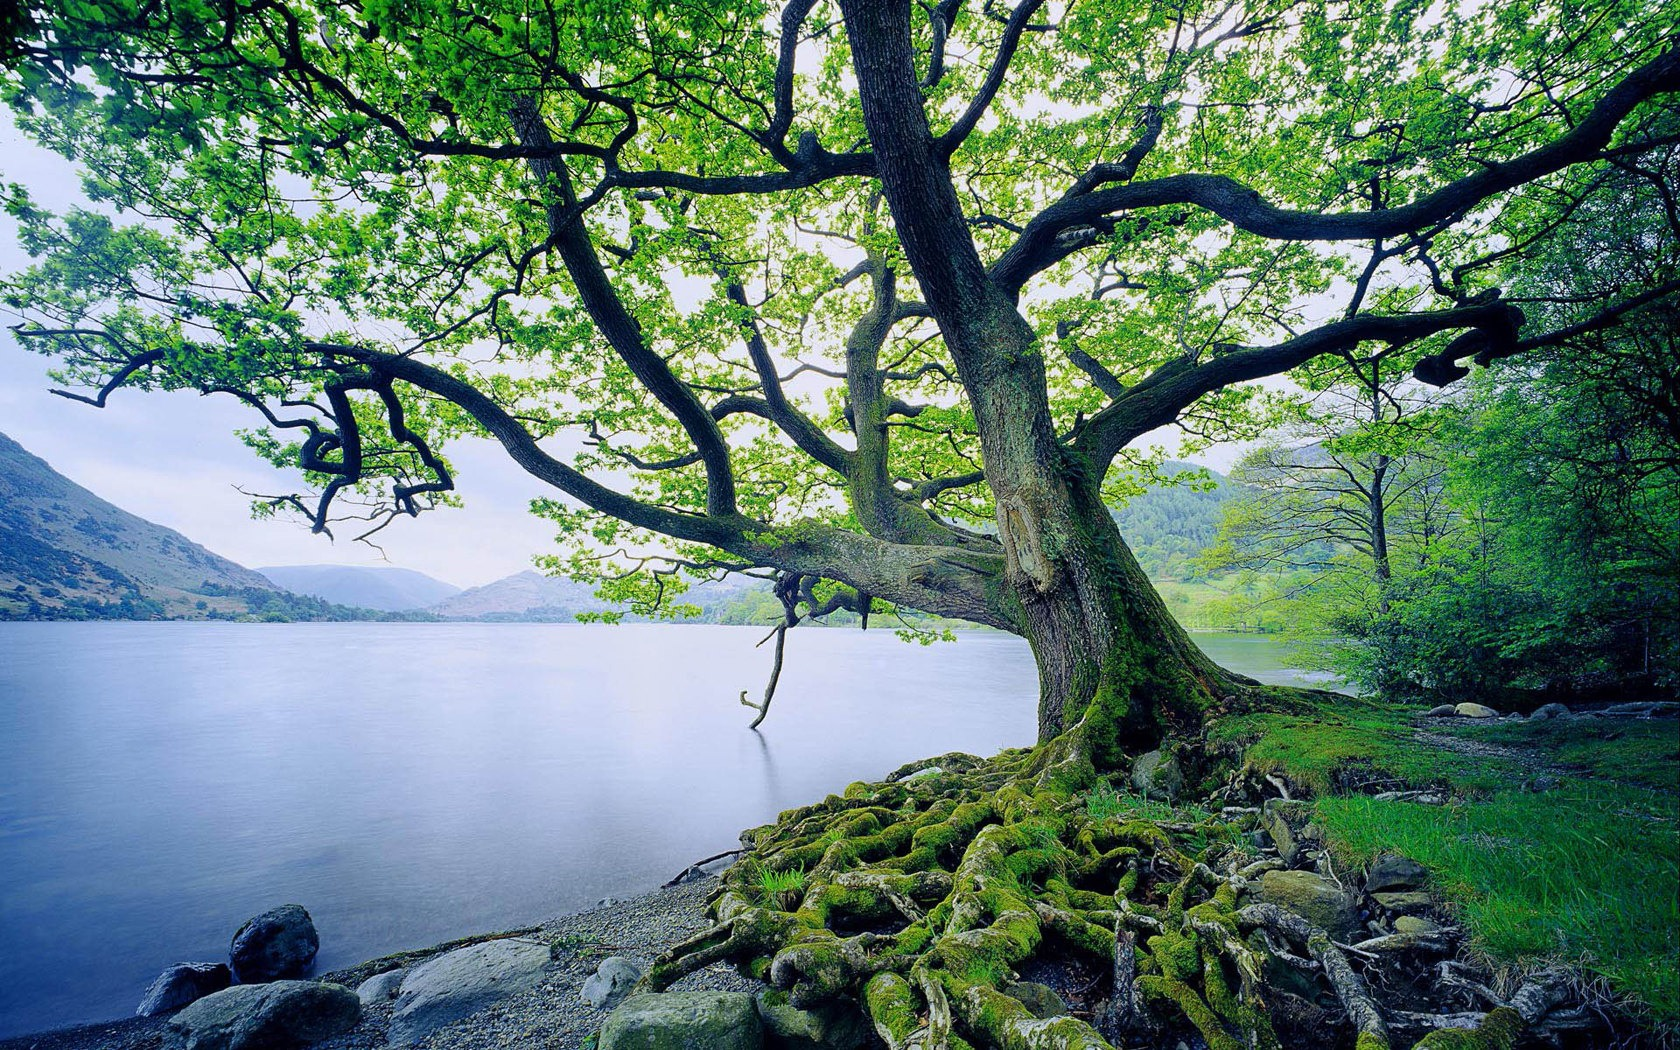 https://i2.wp.com/transformationaltrend.com/wp-content/uploads/2013/09/beautiful-tree-and-river.jpg